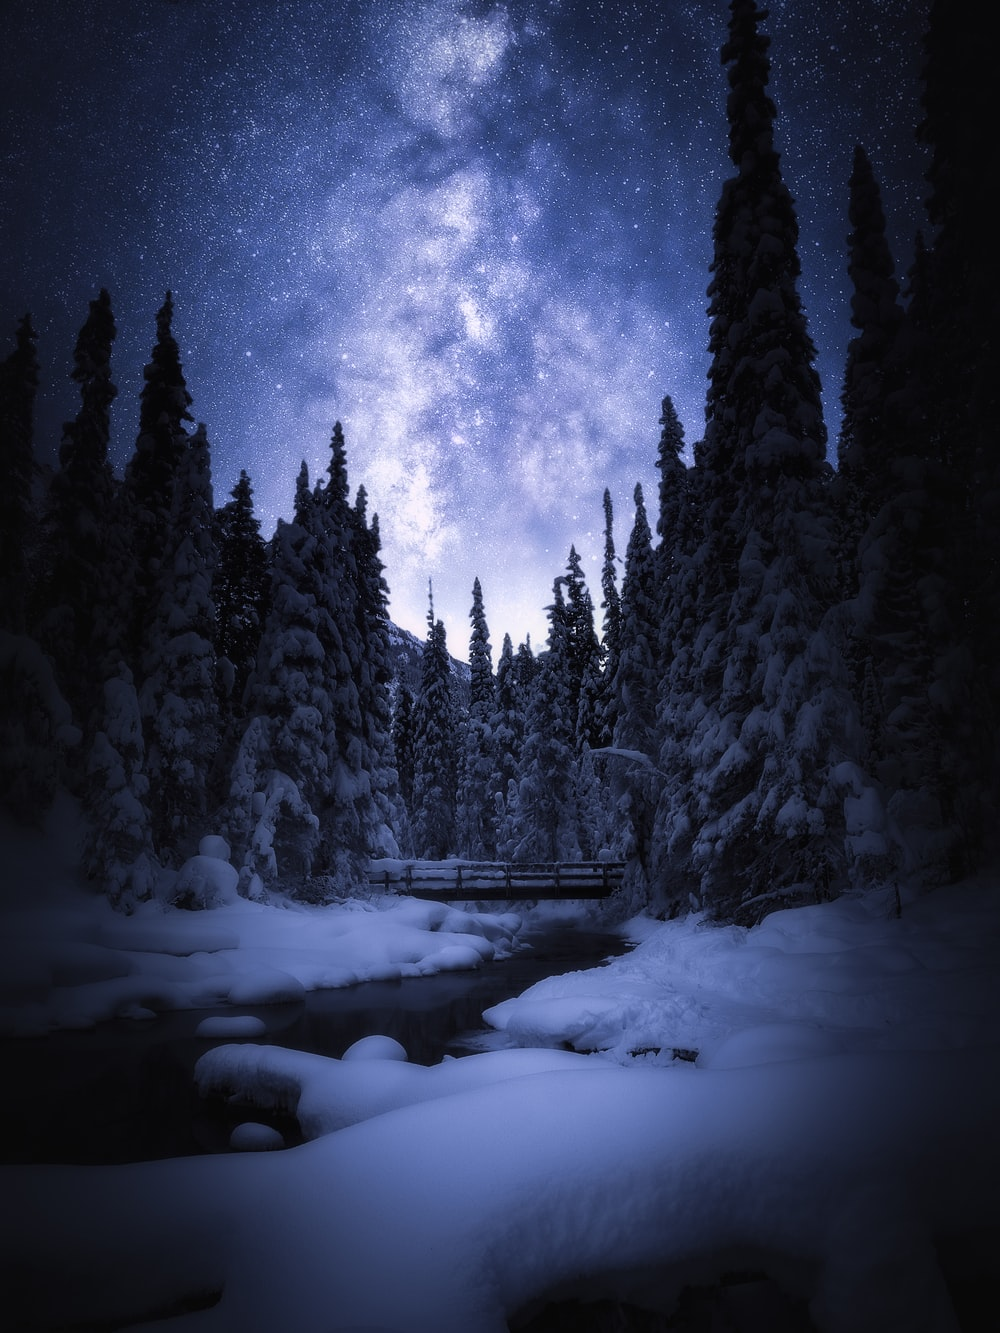 snow covered pine trees during nighttime